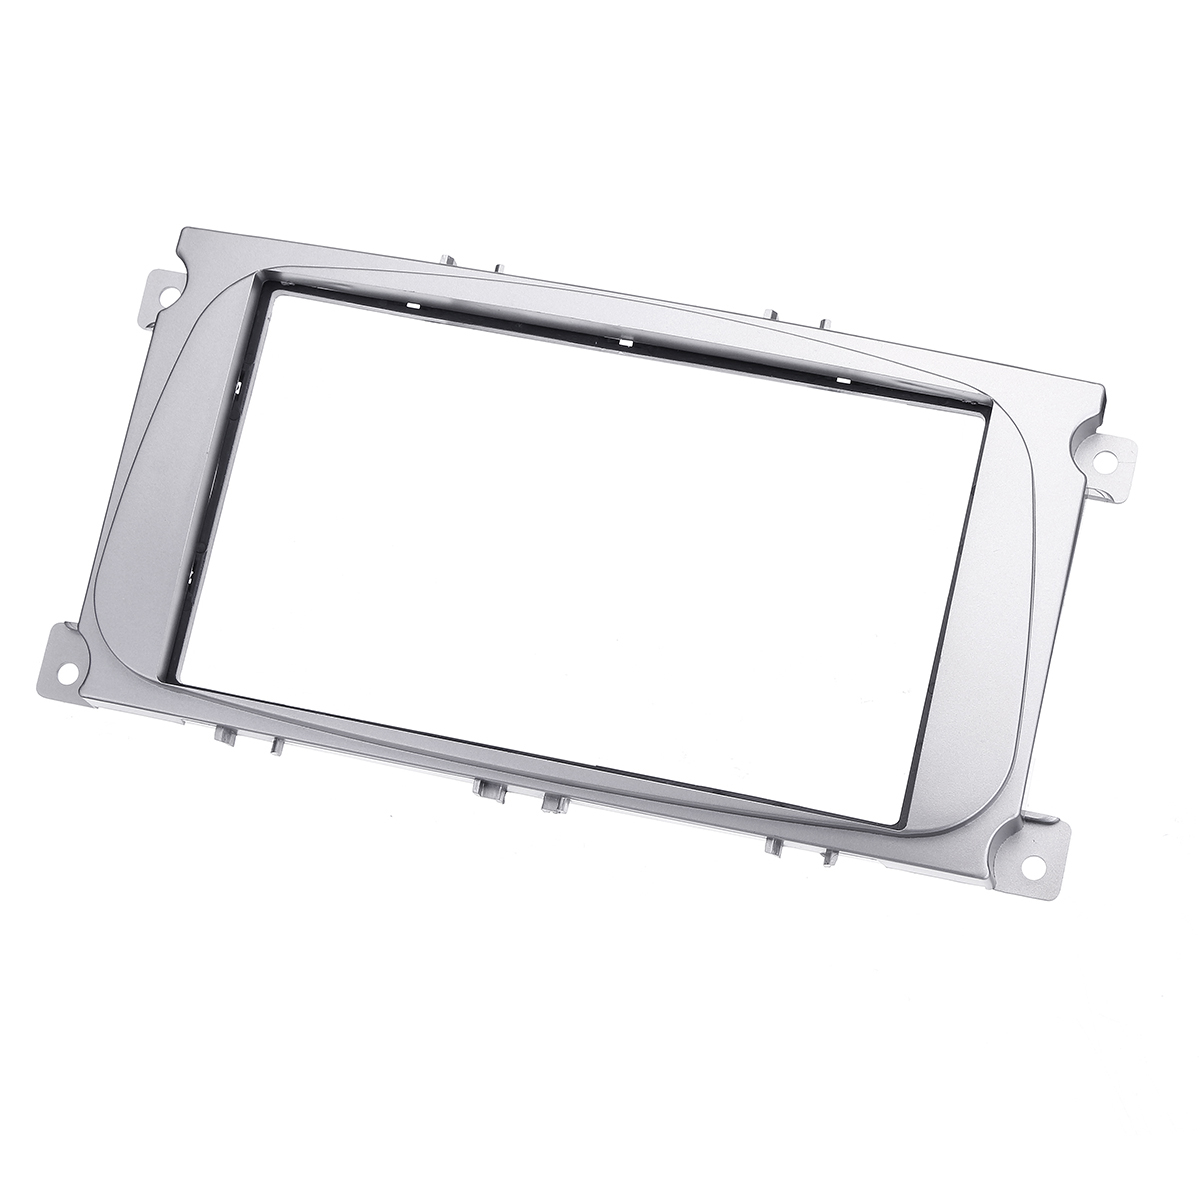 2 Din Car Stereo Radio Fascia Panel Plate Frame Kit For FORD For Focus II Mondeo S-Max C-Max Galaxy II Kuga image